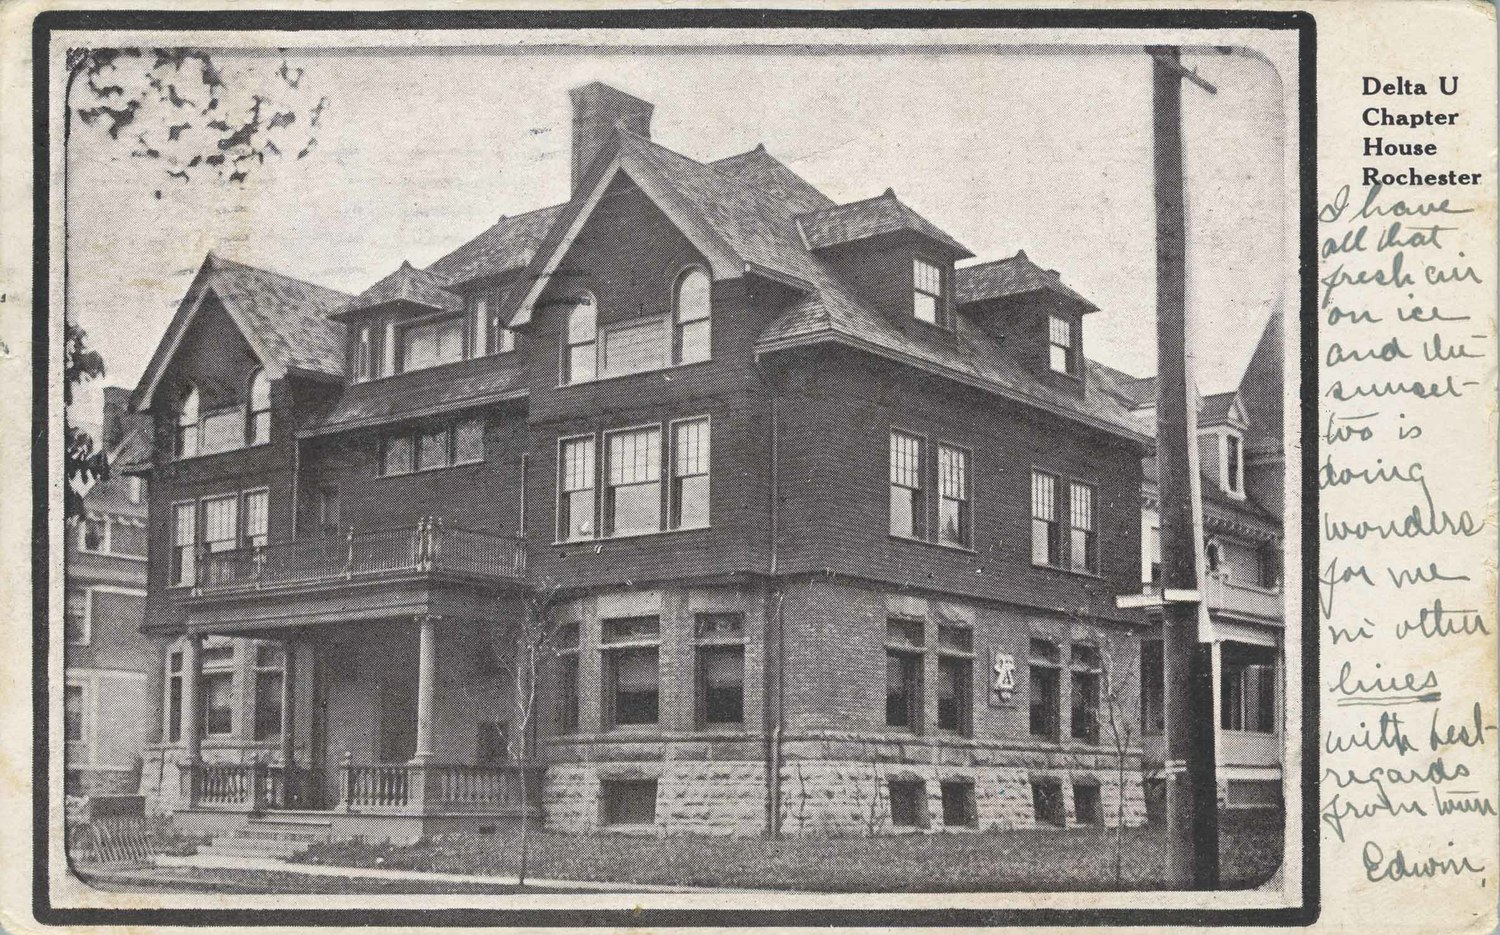 Delta Upsilon Chapter House, Rochester.